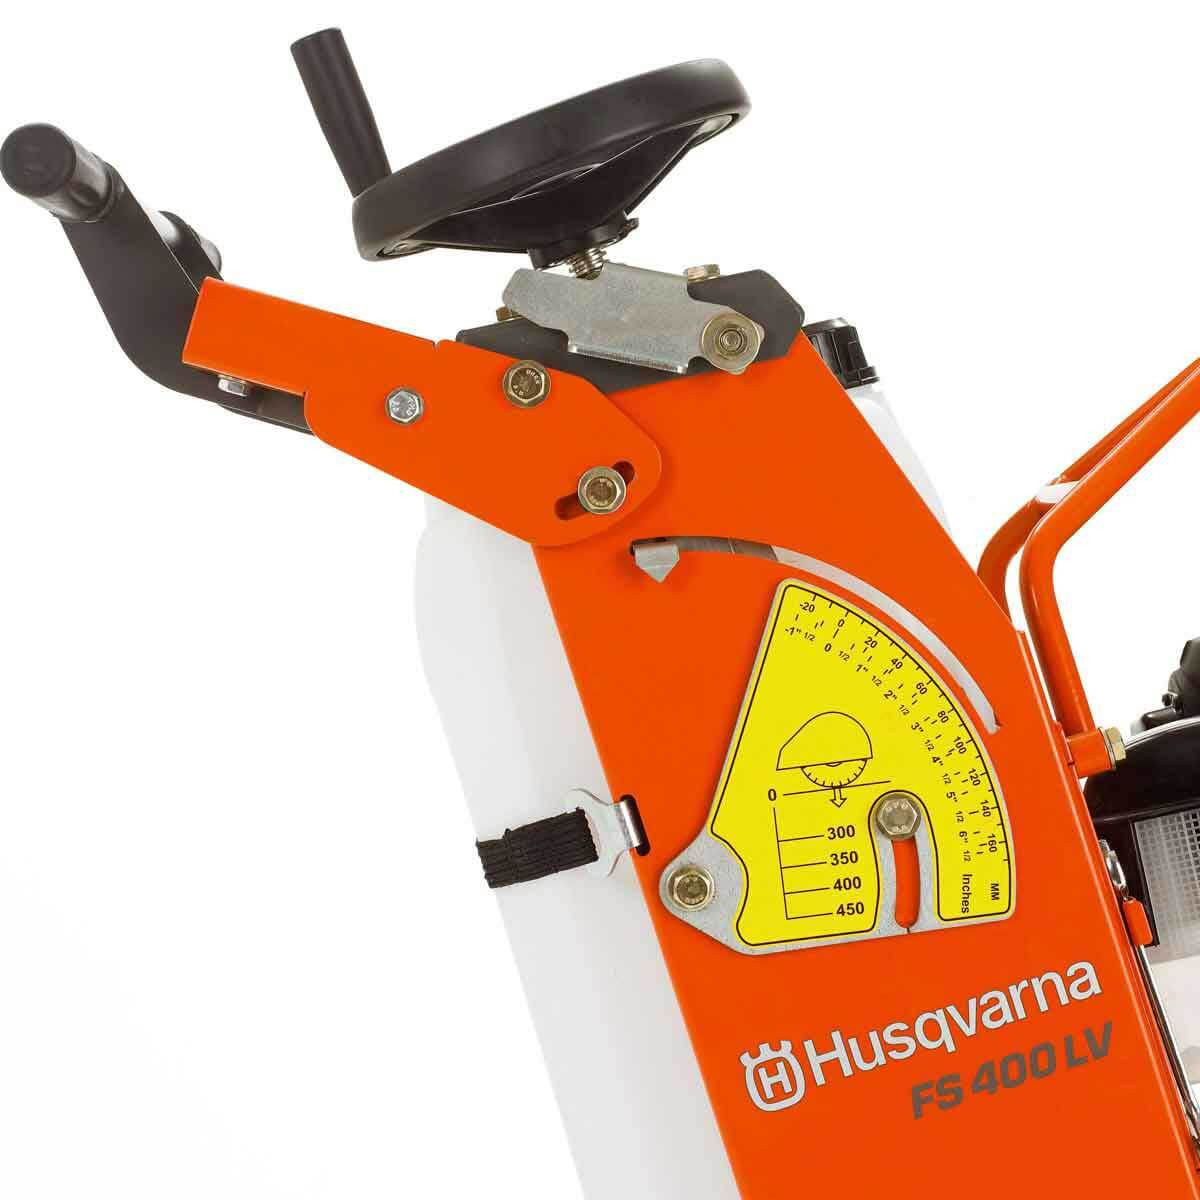 Husqvarna FS400 Concrete Saw depth